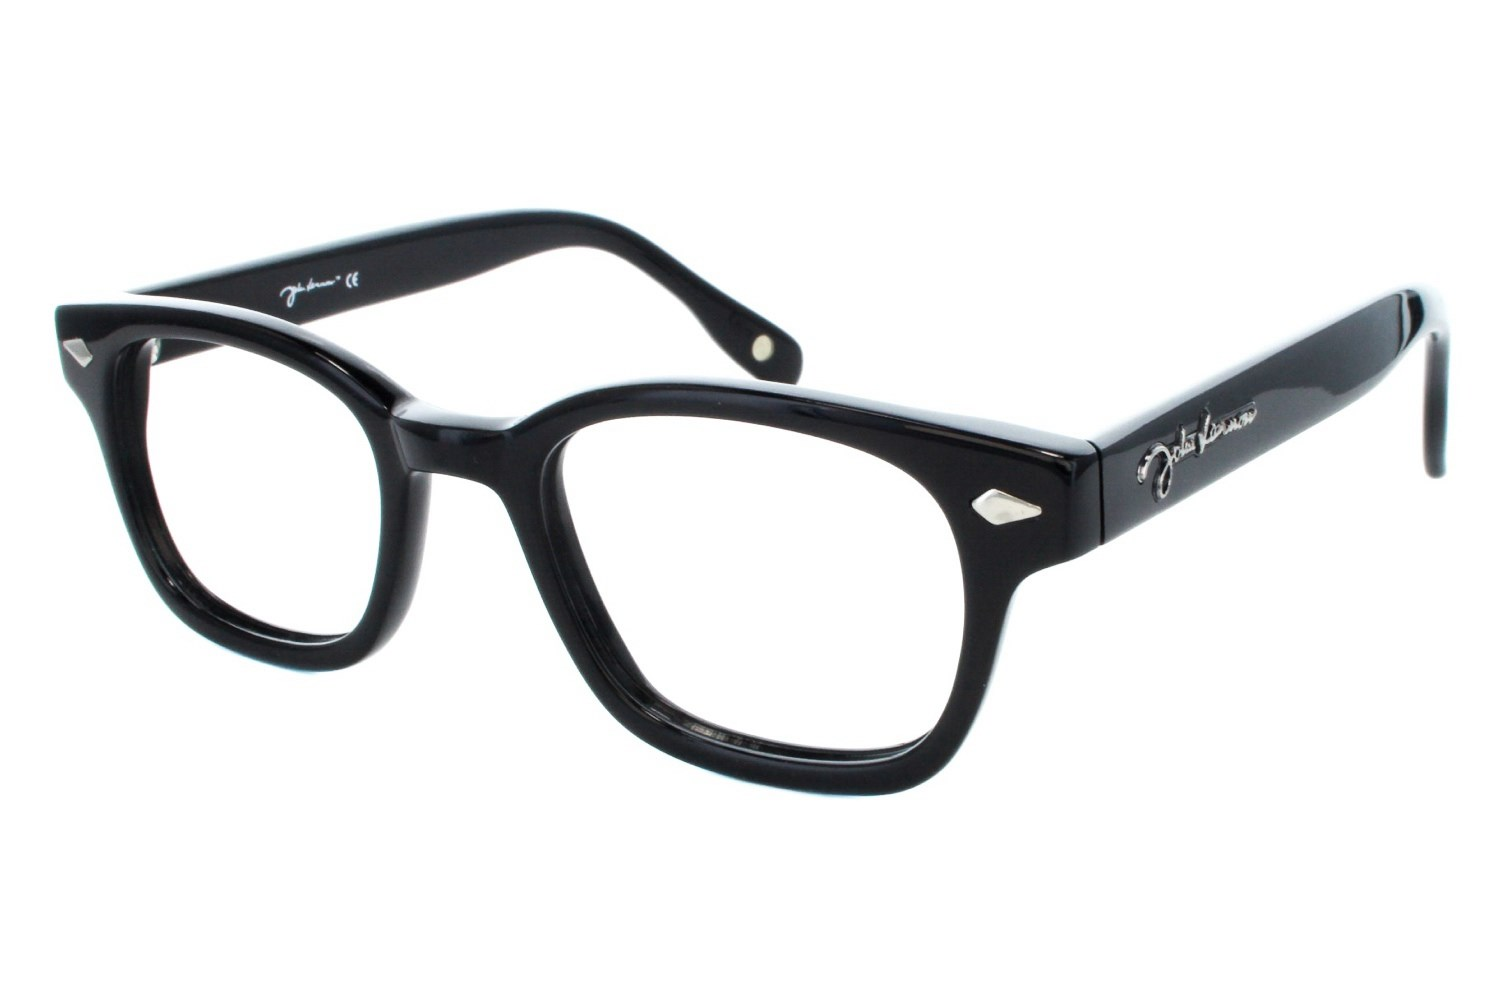 Glasses Frames John Lennon : John Lennon JL09 Prescription Eyeglasses